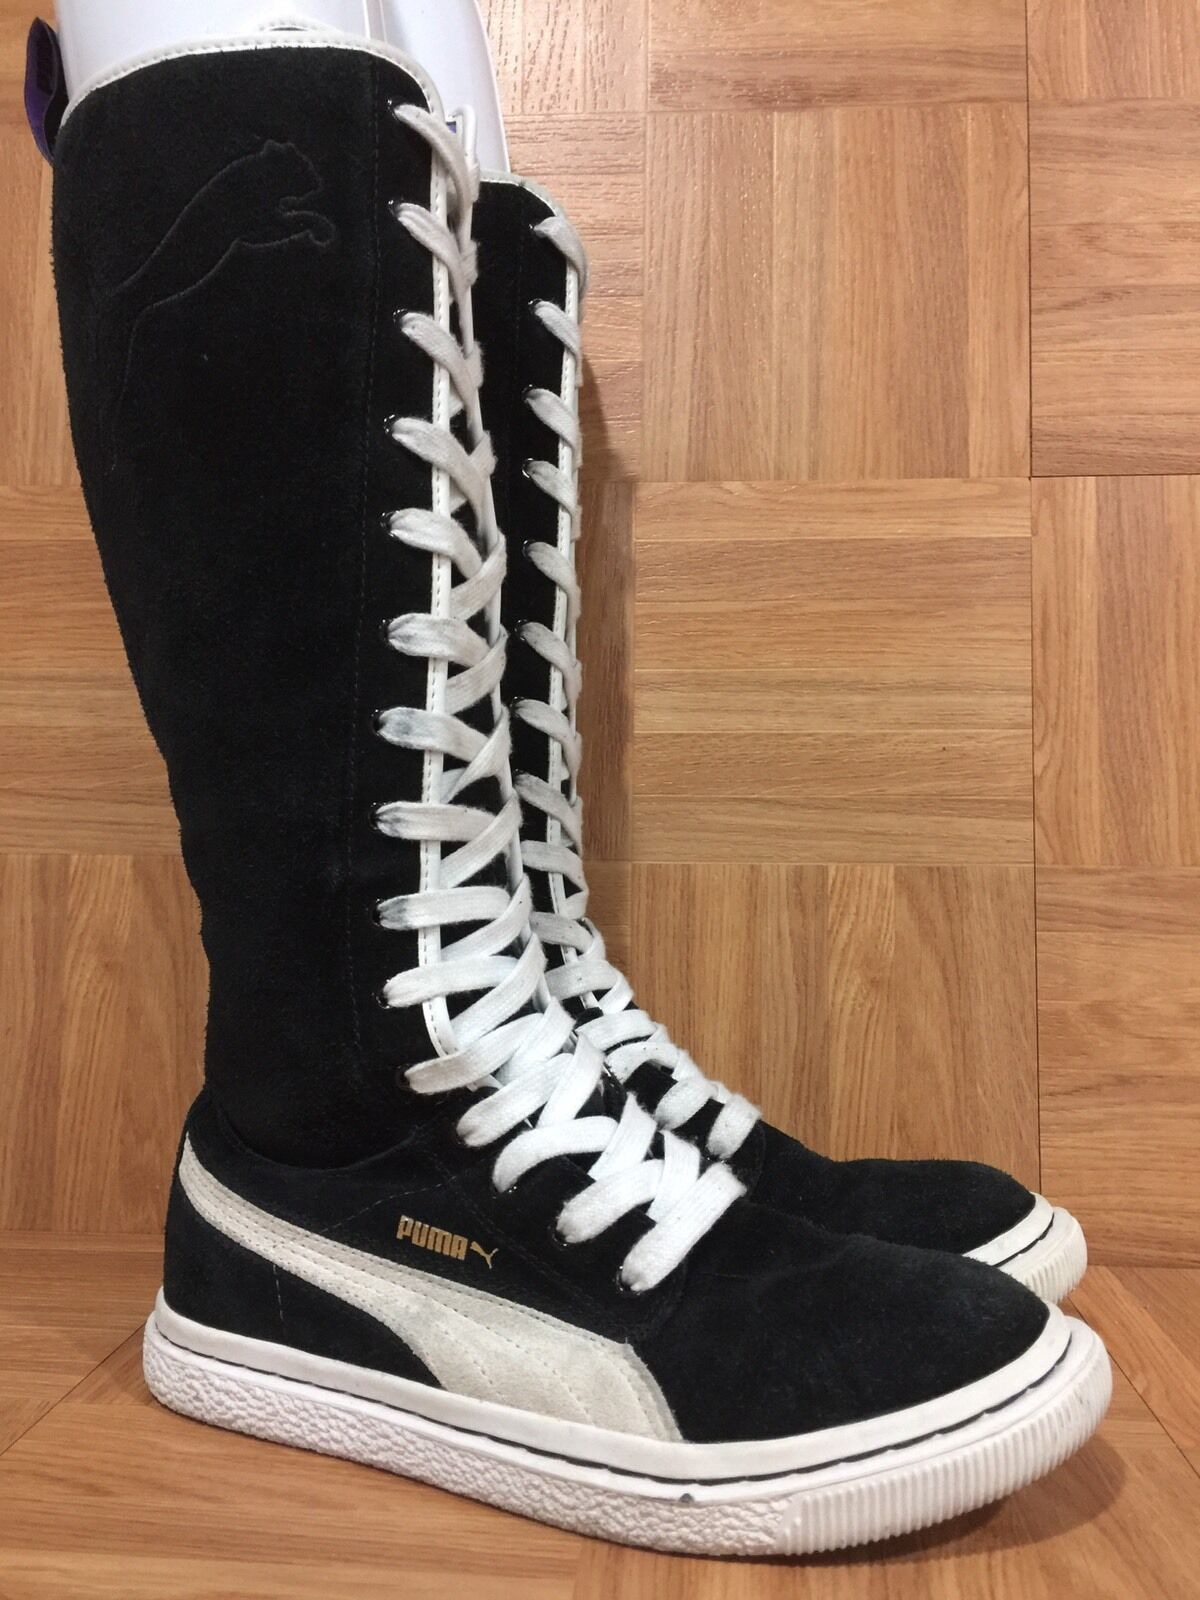 RARE Puma Dr. Clyde Women's Black Tall Sneaker Boots Zippered Sz 7.5 Laced LE